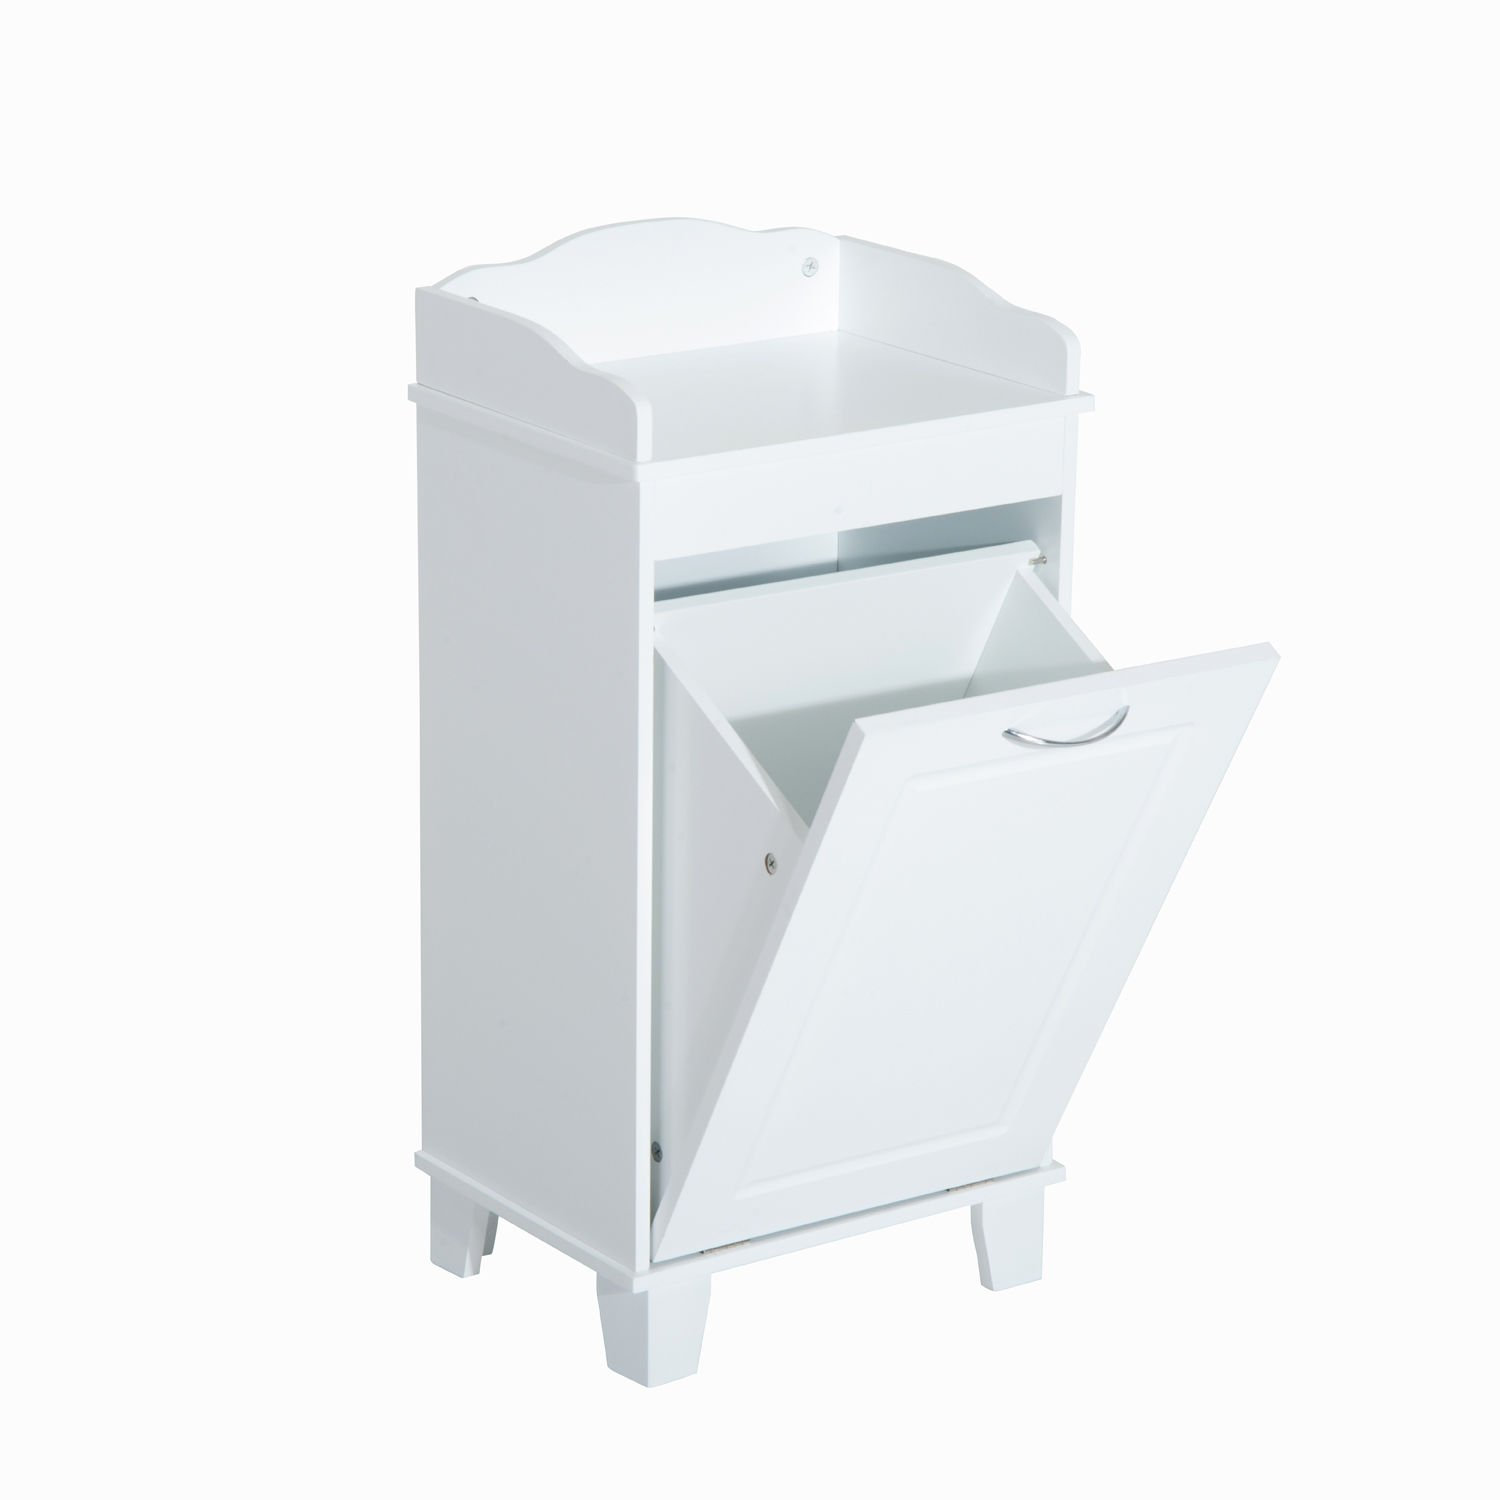 New White Bathroom Hamper Wood Laundry Tilt Out Basket Storage Bench Furniture Cabinet by totoshop (Image #1)